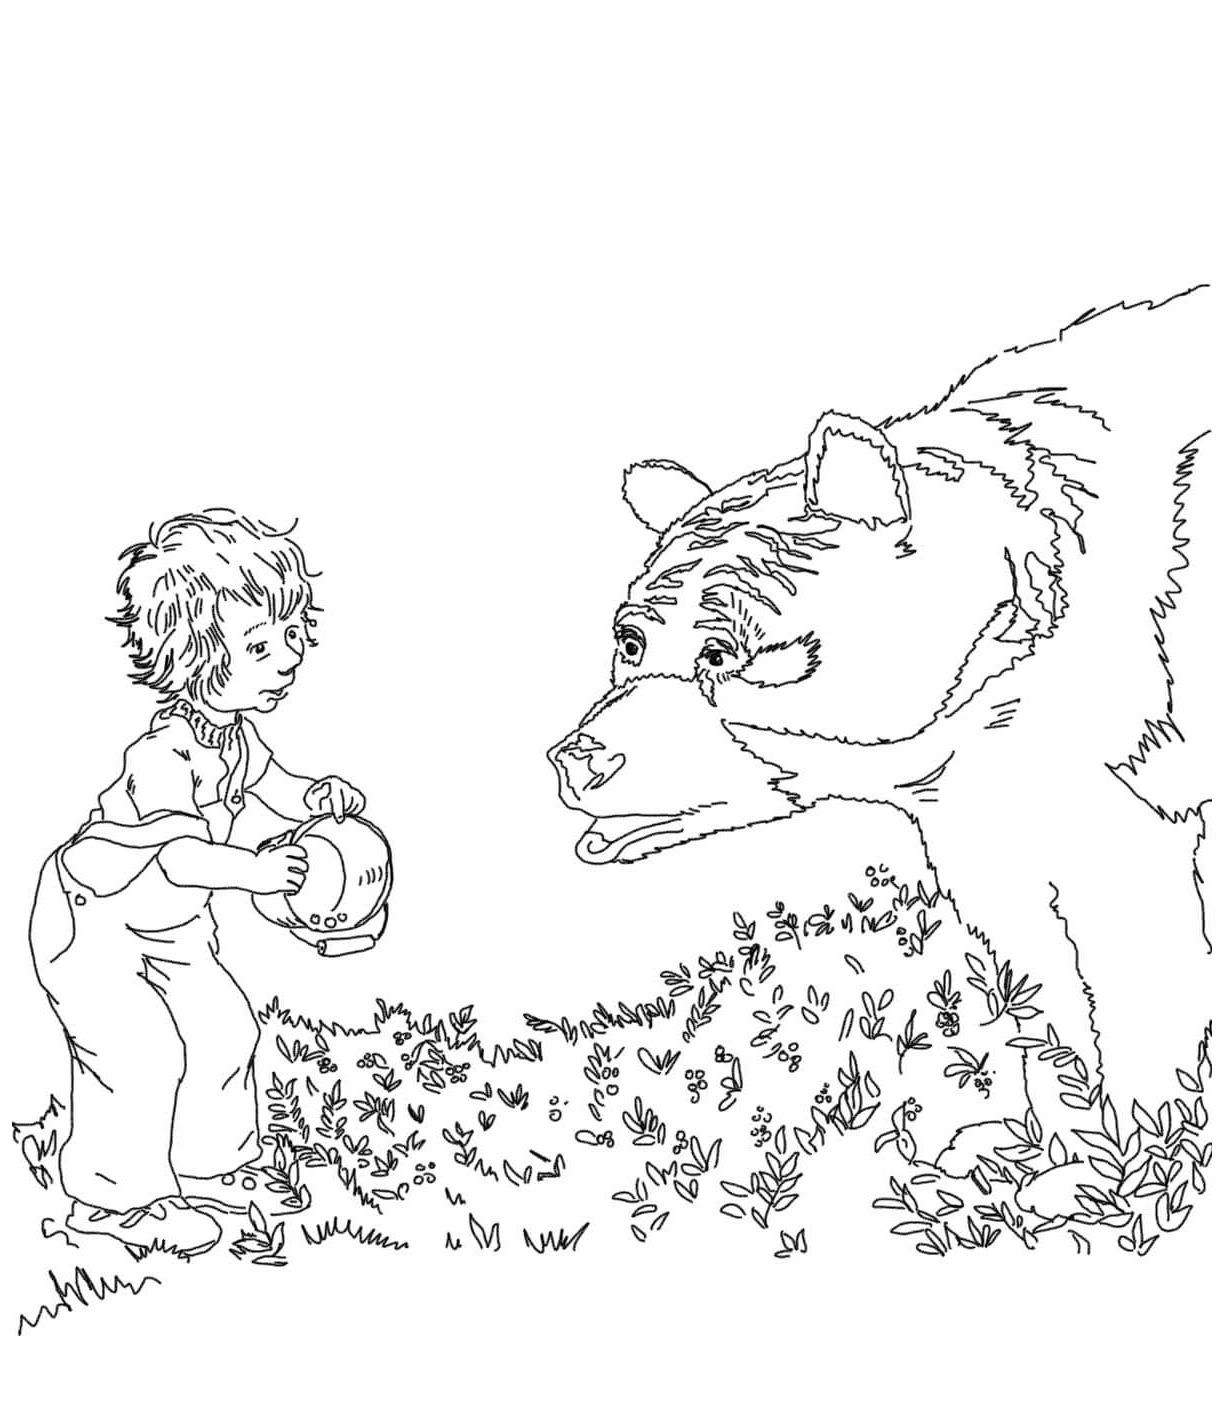 For Sal Blueberries For Sal Coloring Pictures Coloring Pages